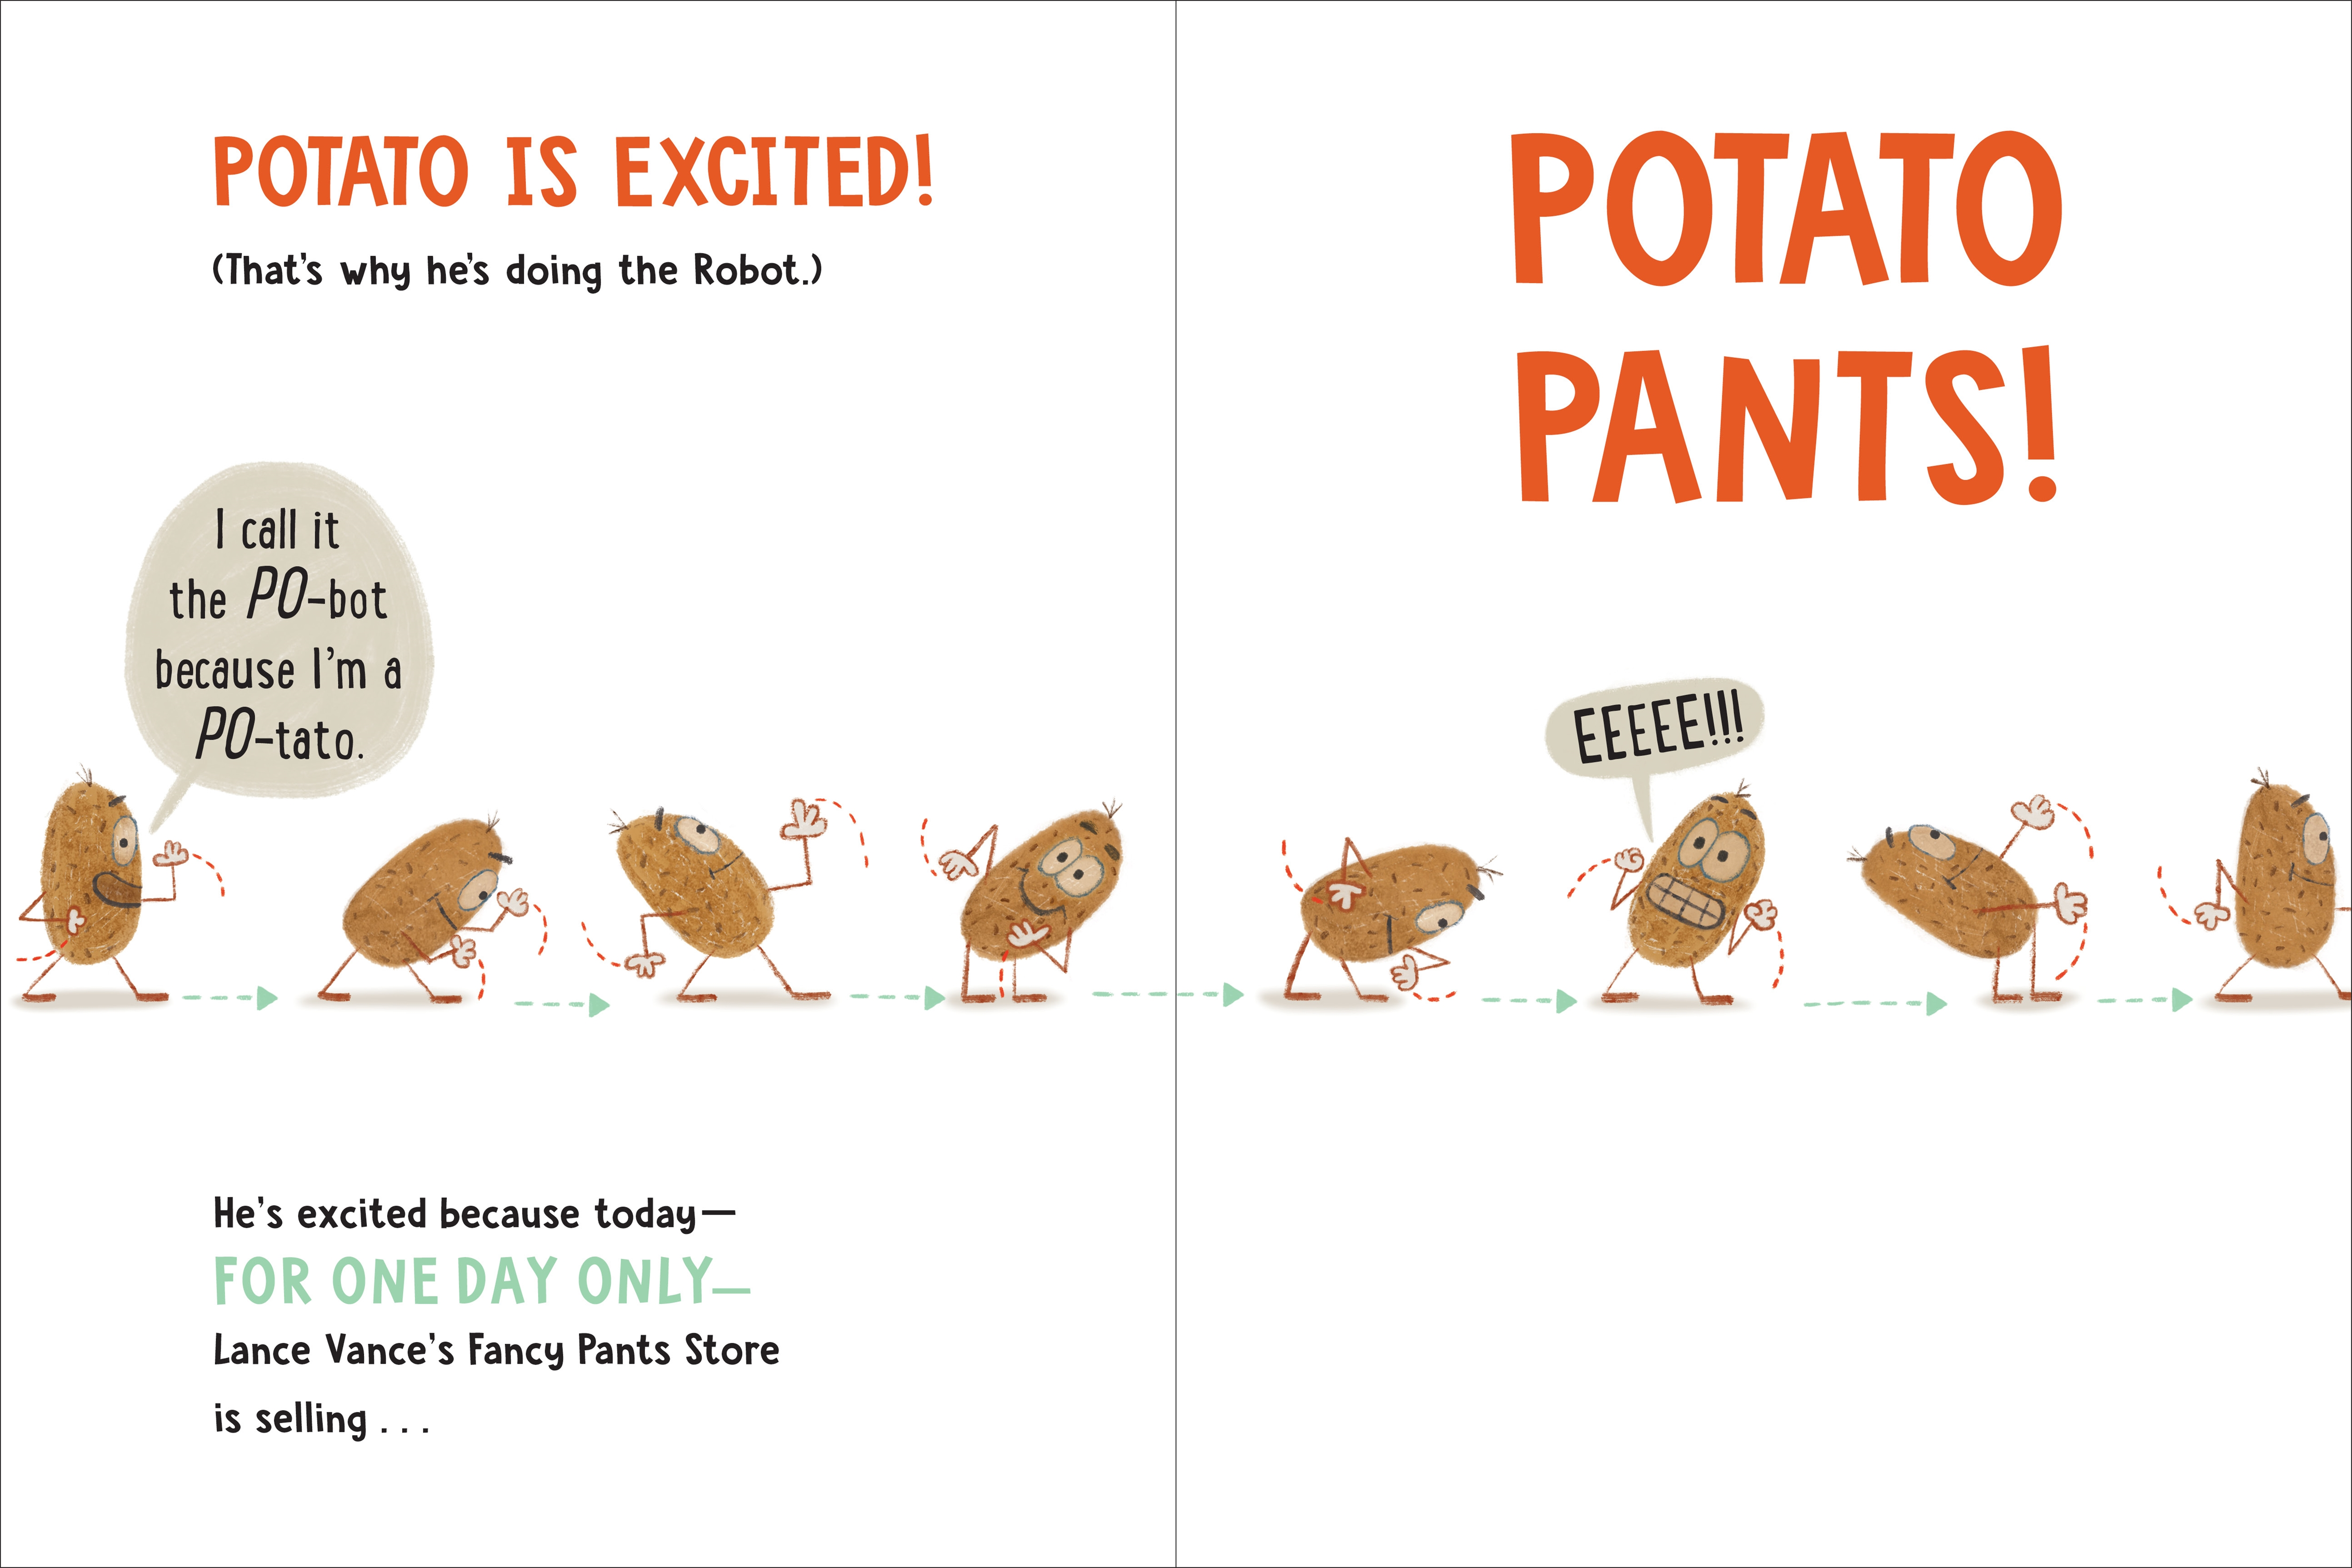 celebrate-picture-books-picture-book-review-potato-pants-po-bot-dance